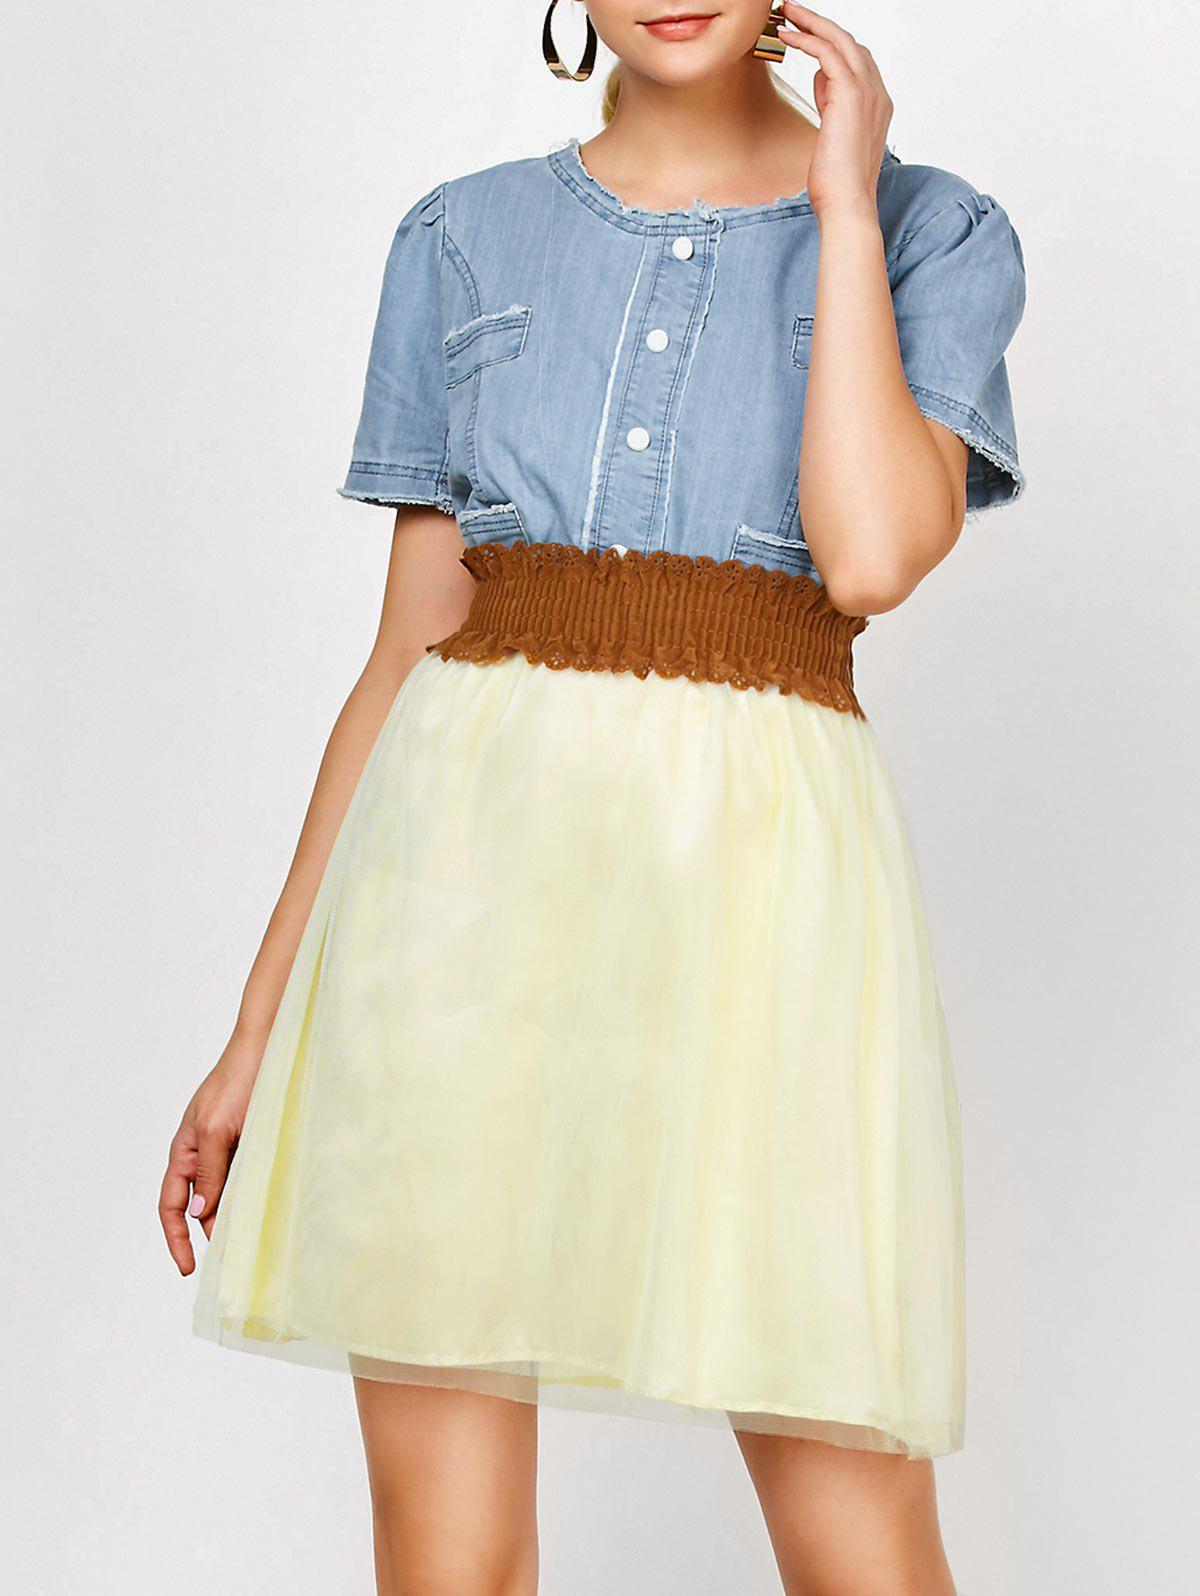 Elegant Scoop Neck Denim Splicing Short Sleeve Chiffon Dress With Belt For Women - COLORMIX S